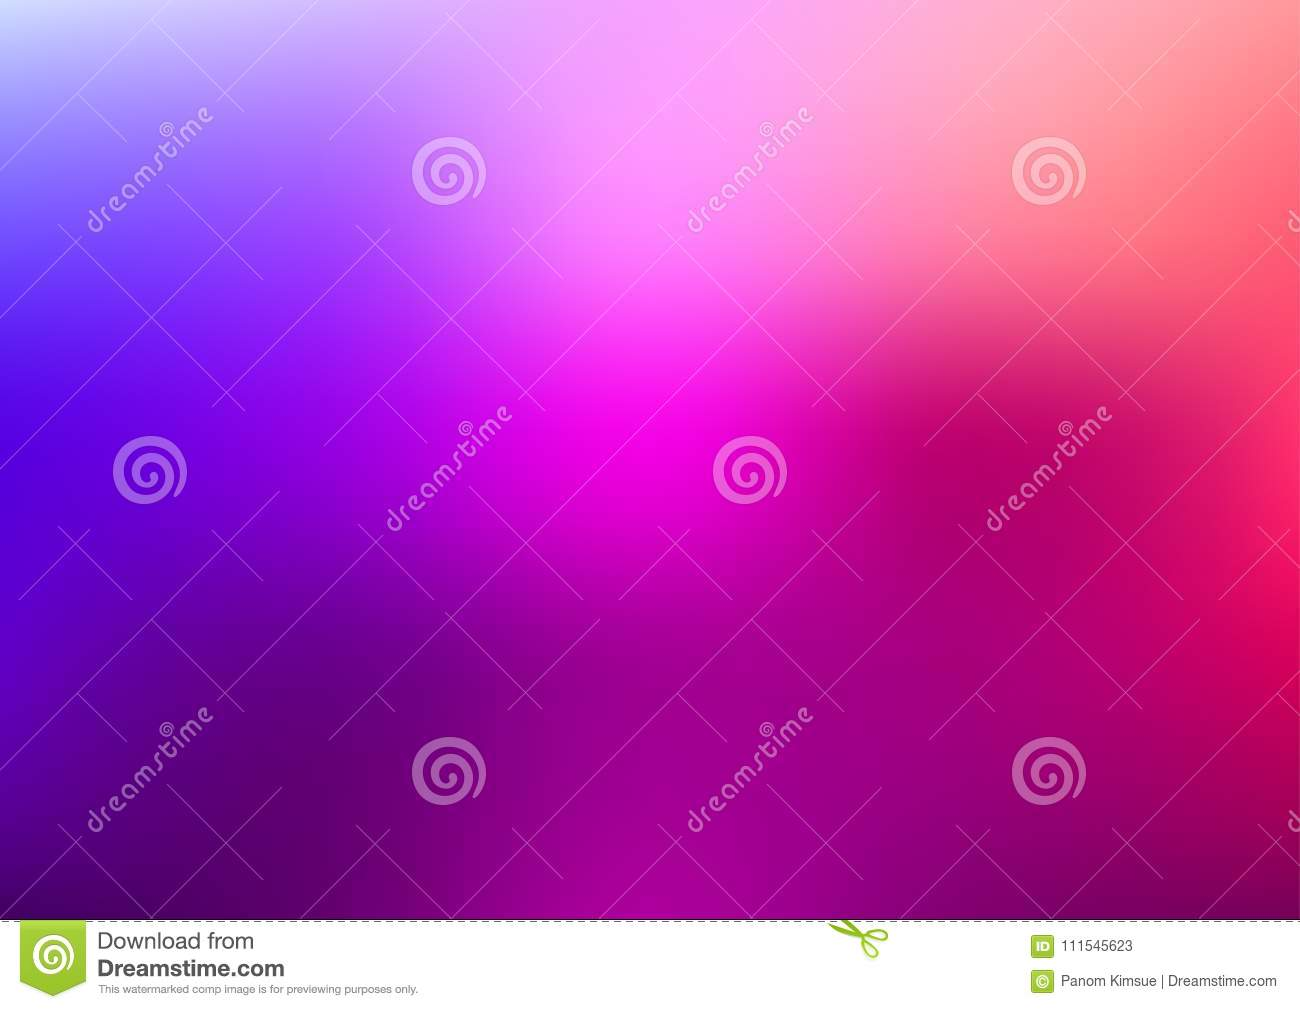 Blue pink red and yellow color vector background texture for download blue pink red and yellow color vector background texture for business card design background with reheart Gallery